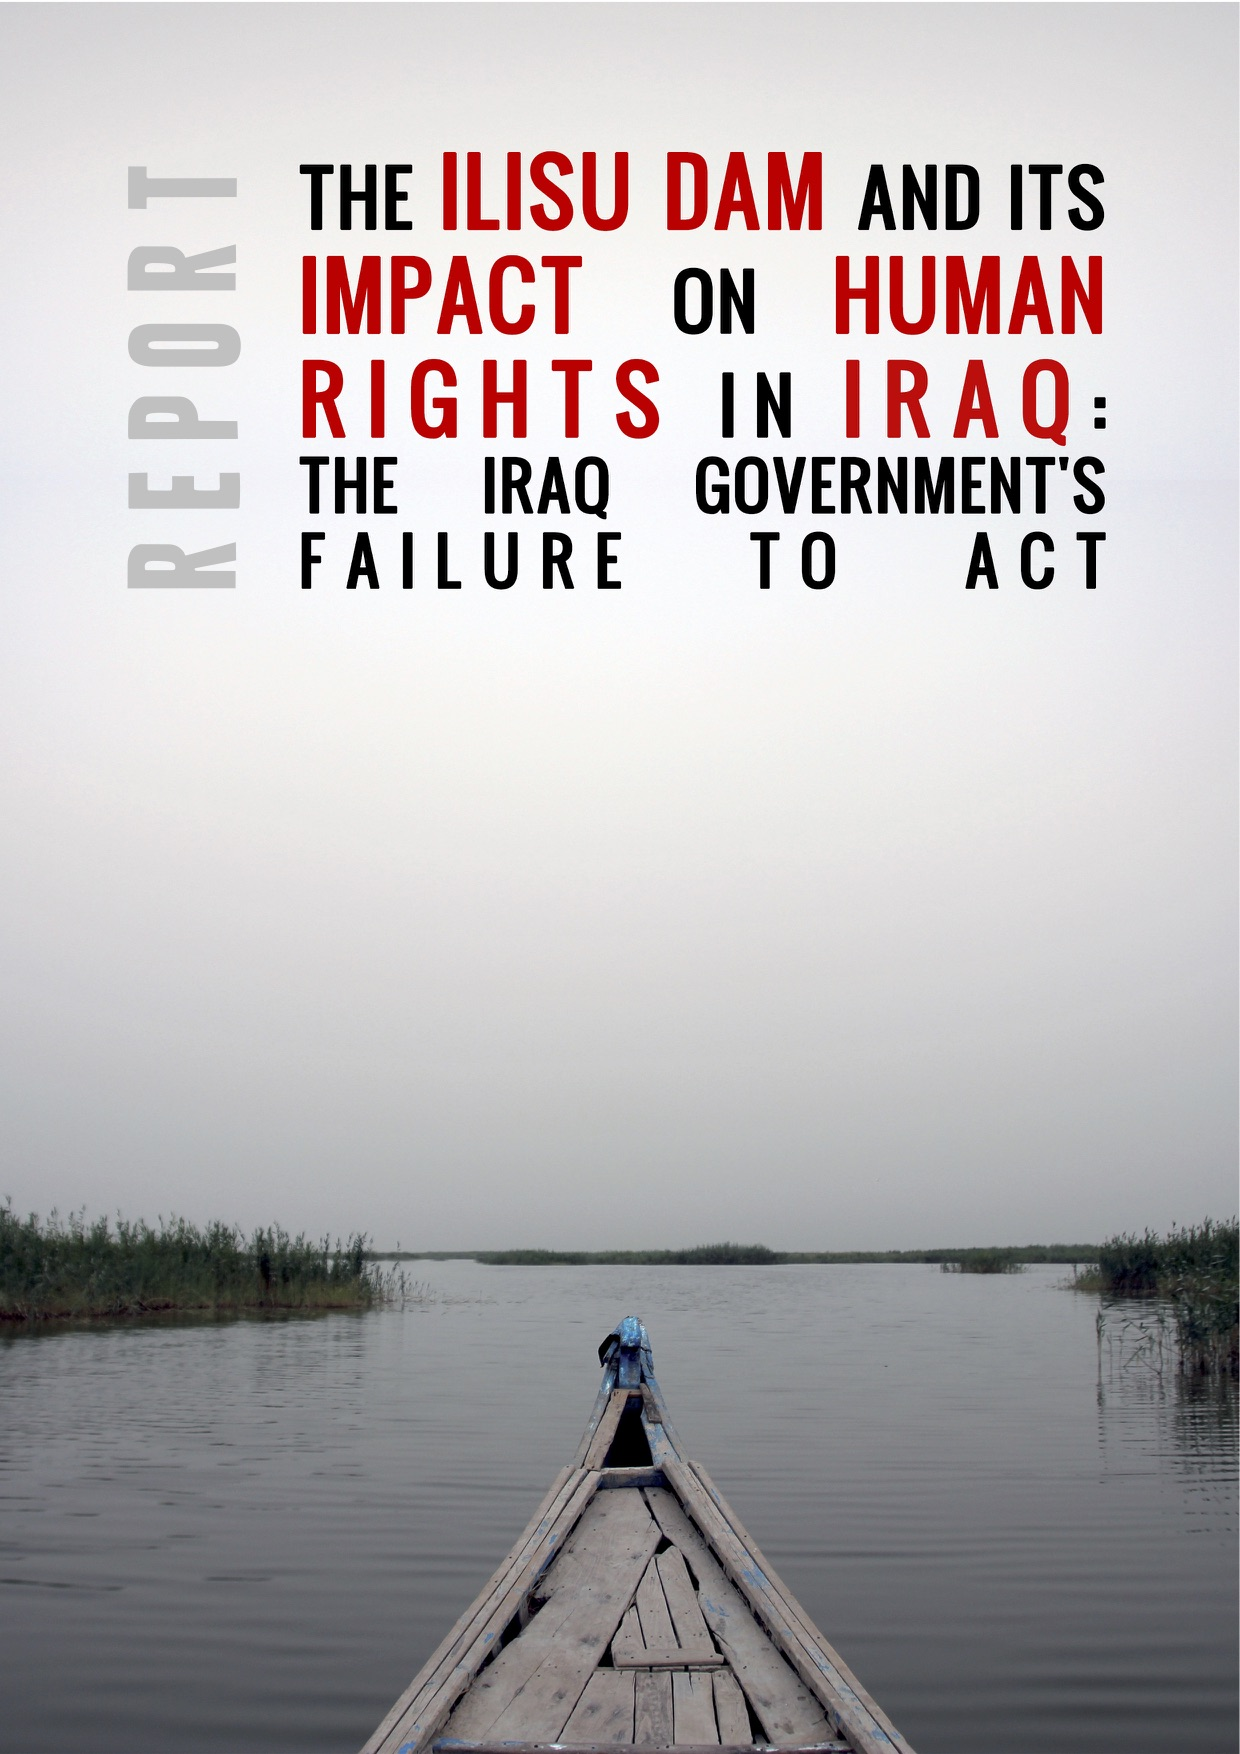 The Threat of Ilisu Dam and the Failure of the Iraqi Government to Protect Iraqi's Right to Water